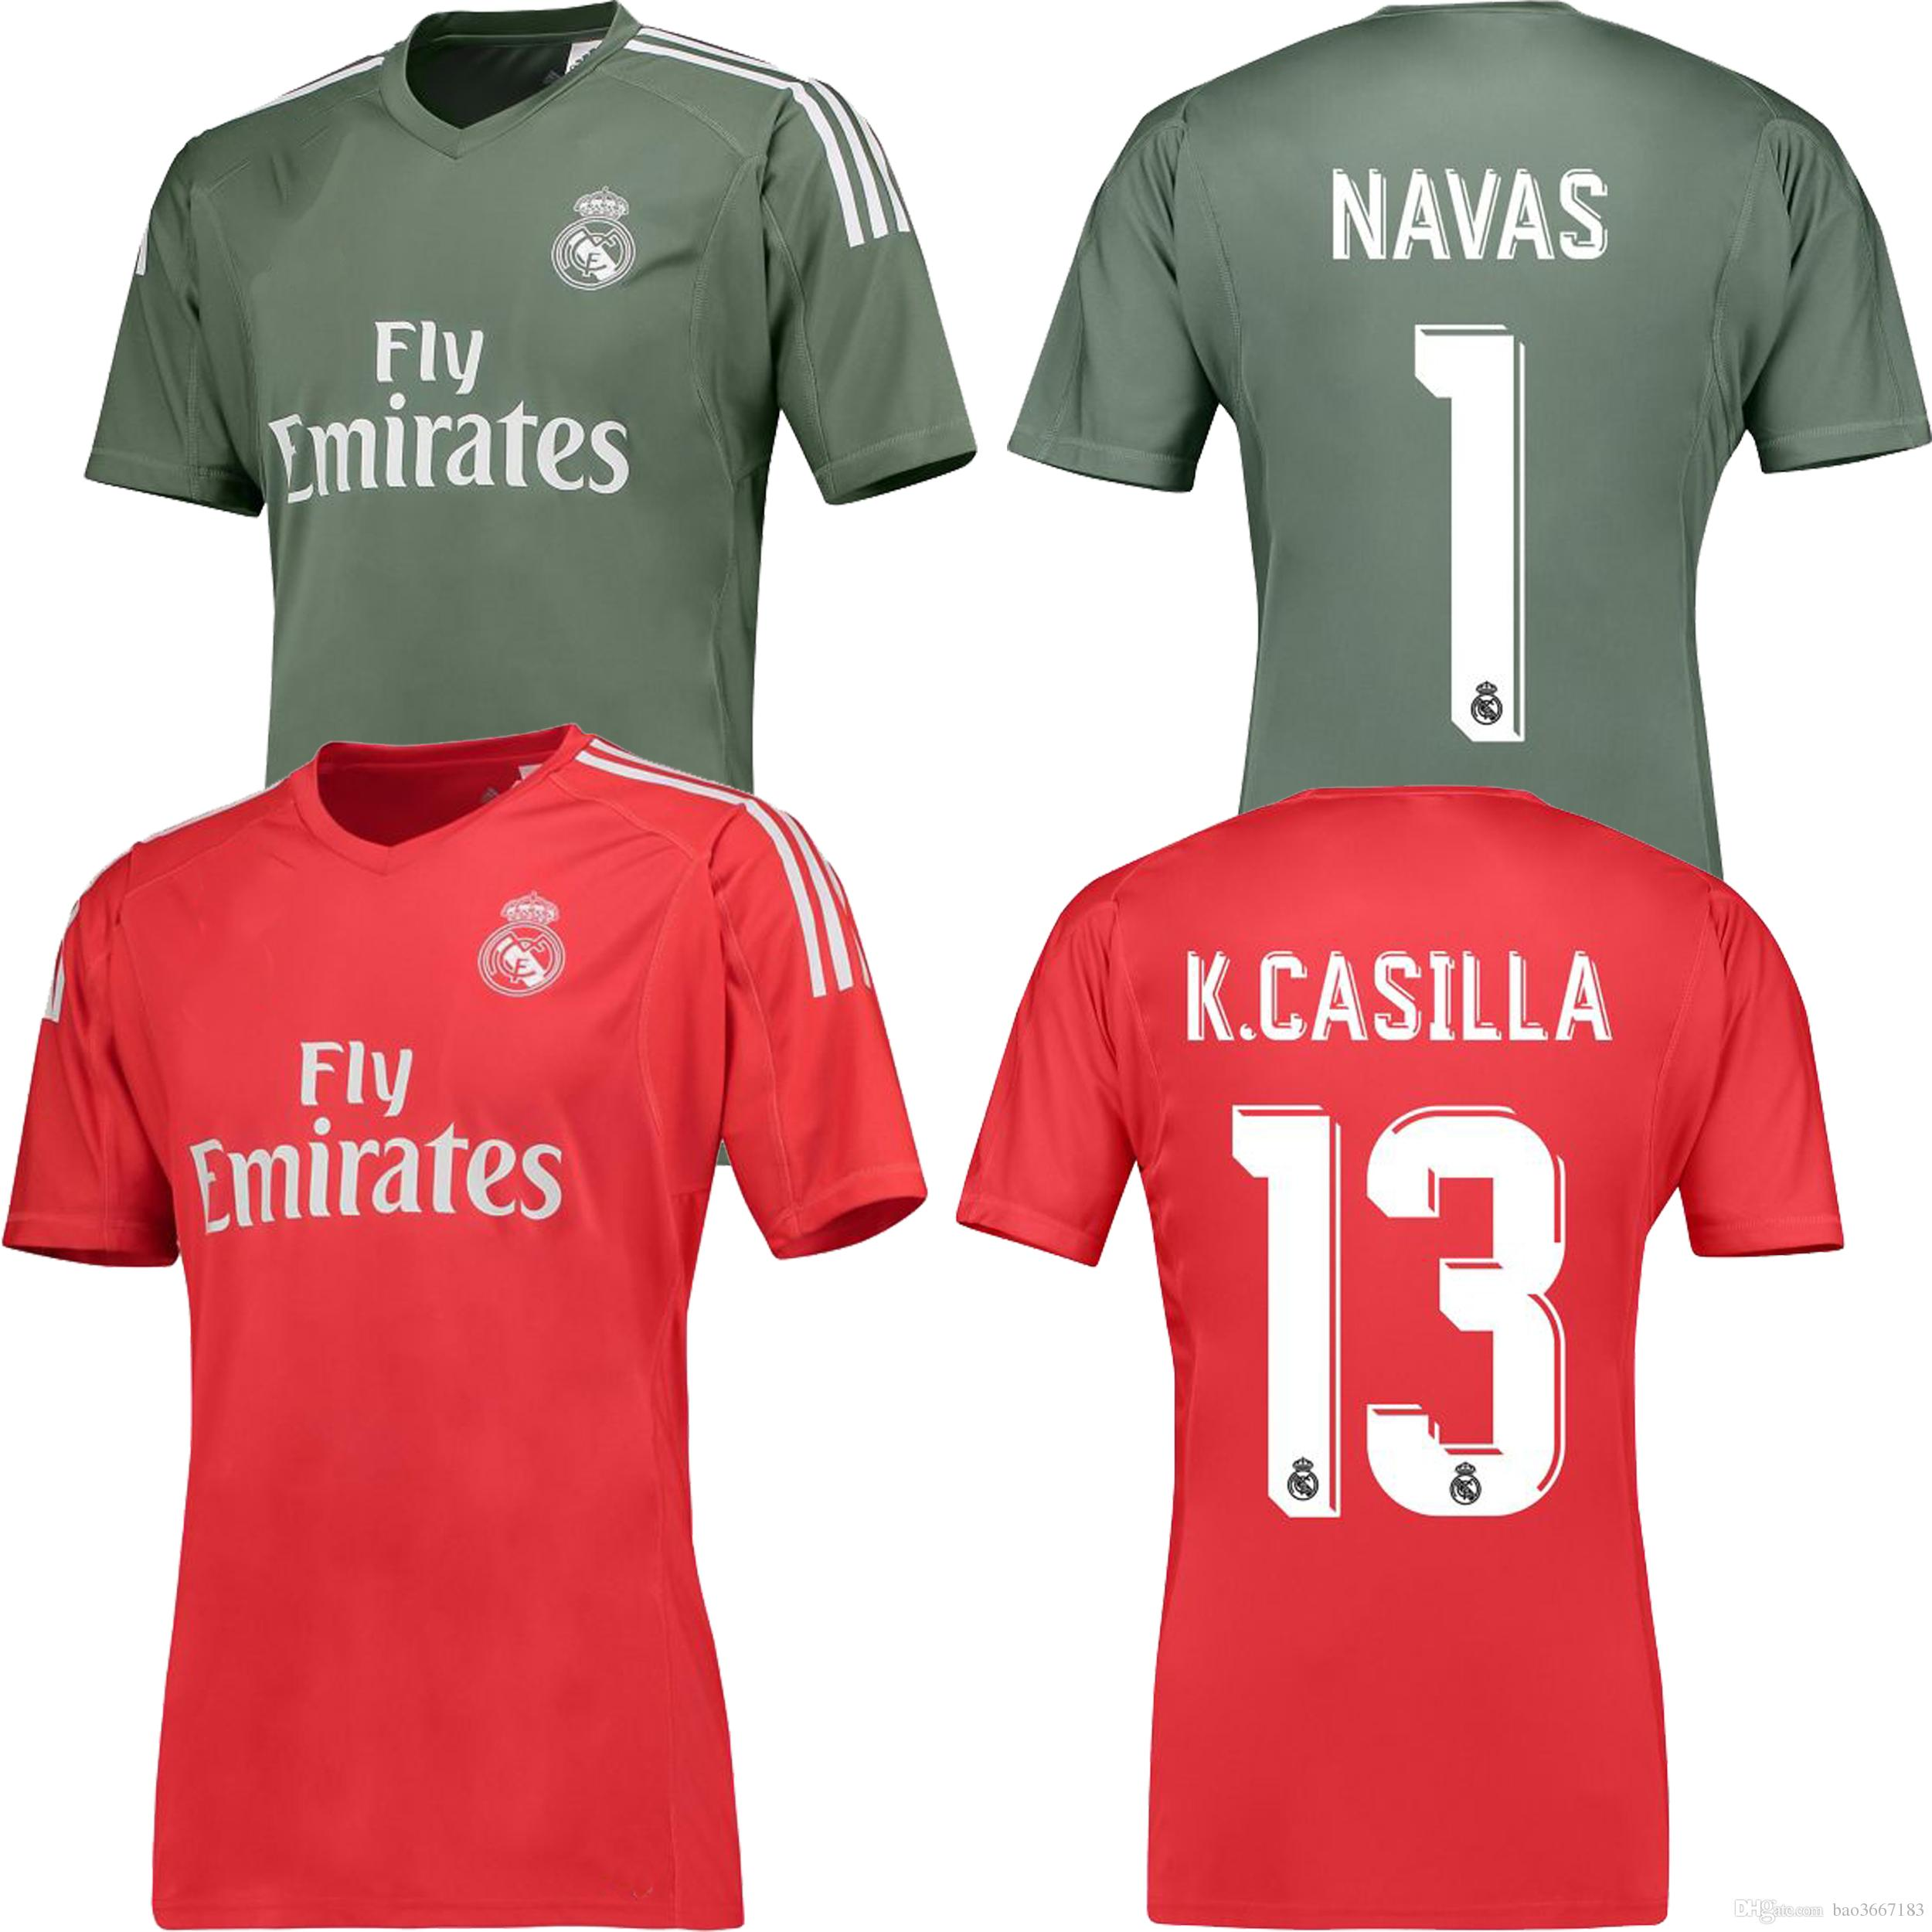 Maillot THIRD Real Madrid K. Casilla